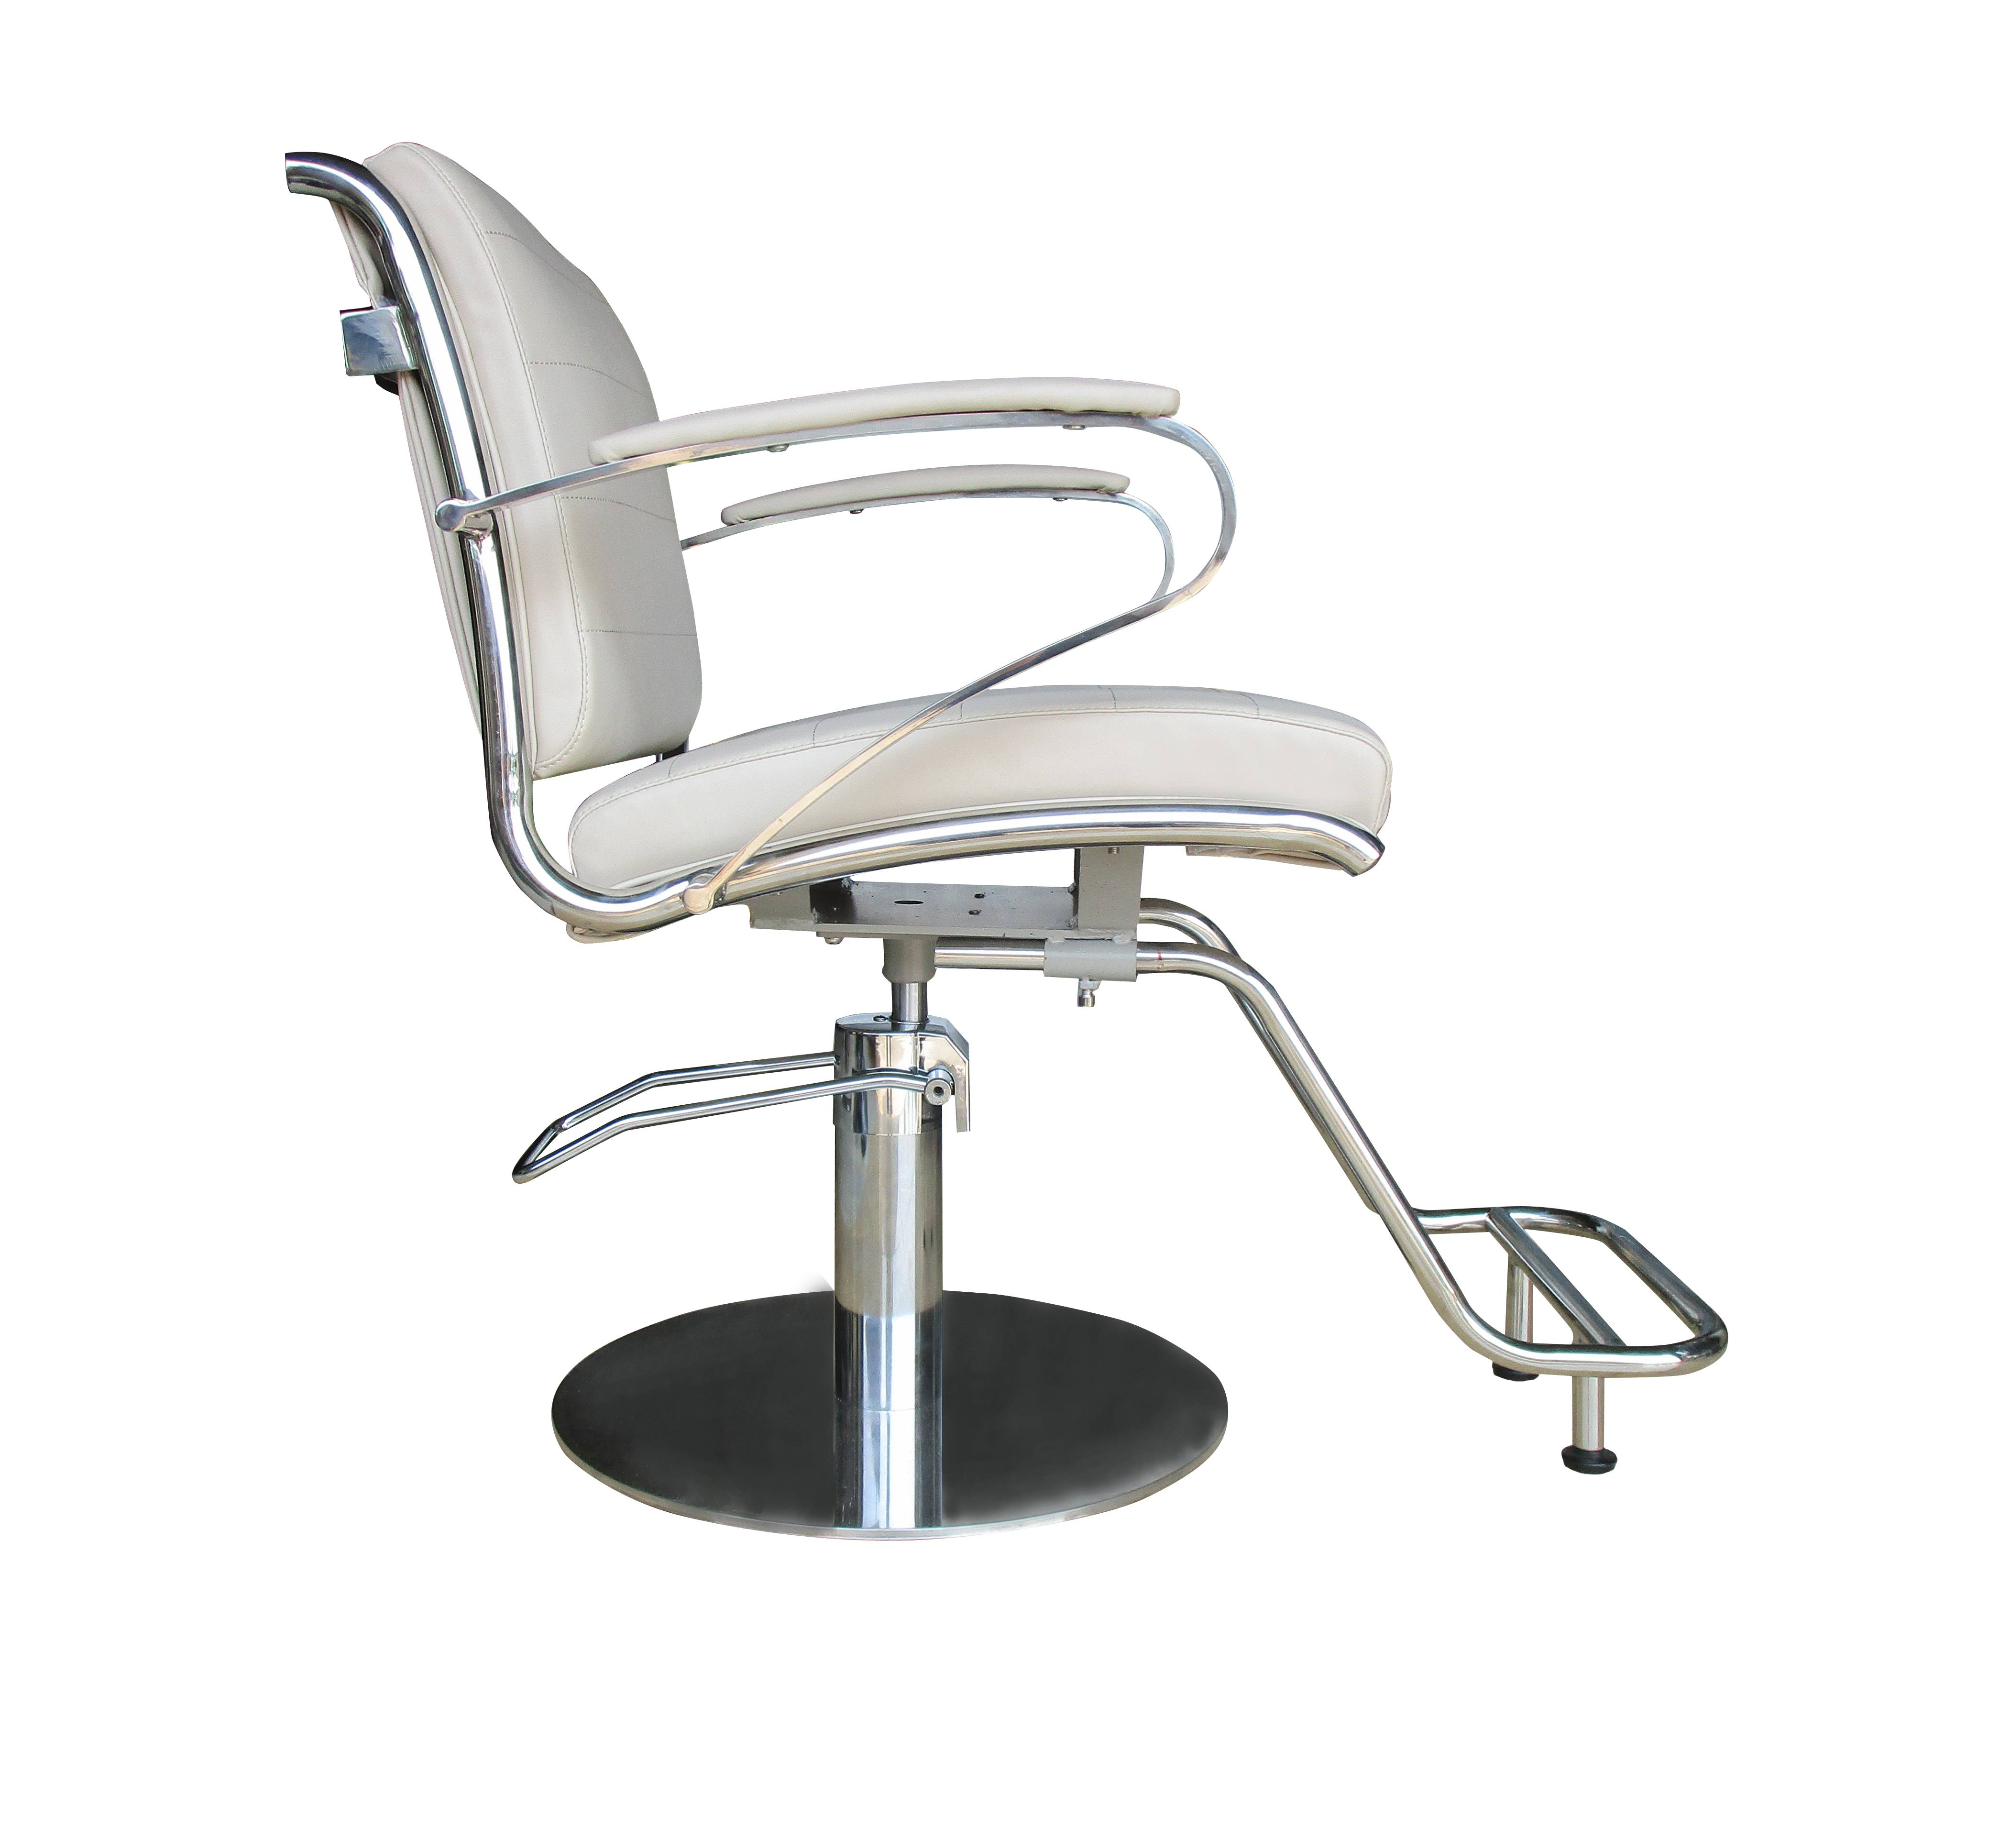 Miraculous China Factory Wholesale Hydraulic Barber Chair Use In Salon Home Remodeling Inspirations Genioncuboardxyz